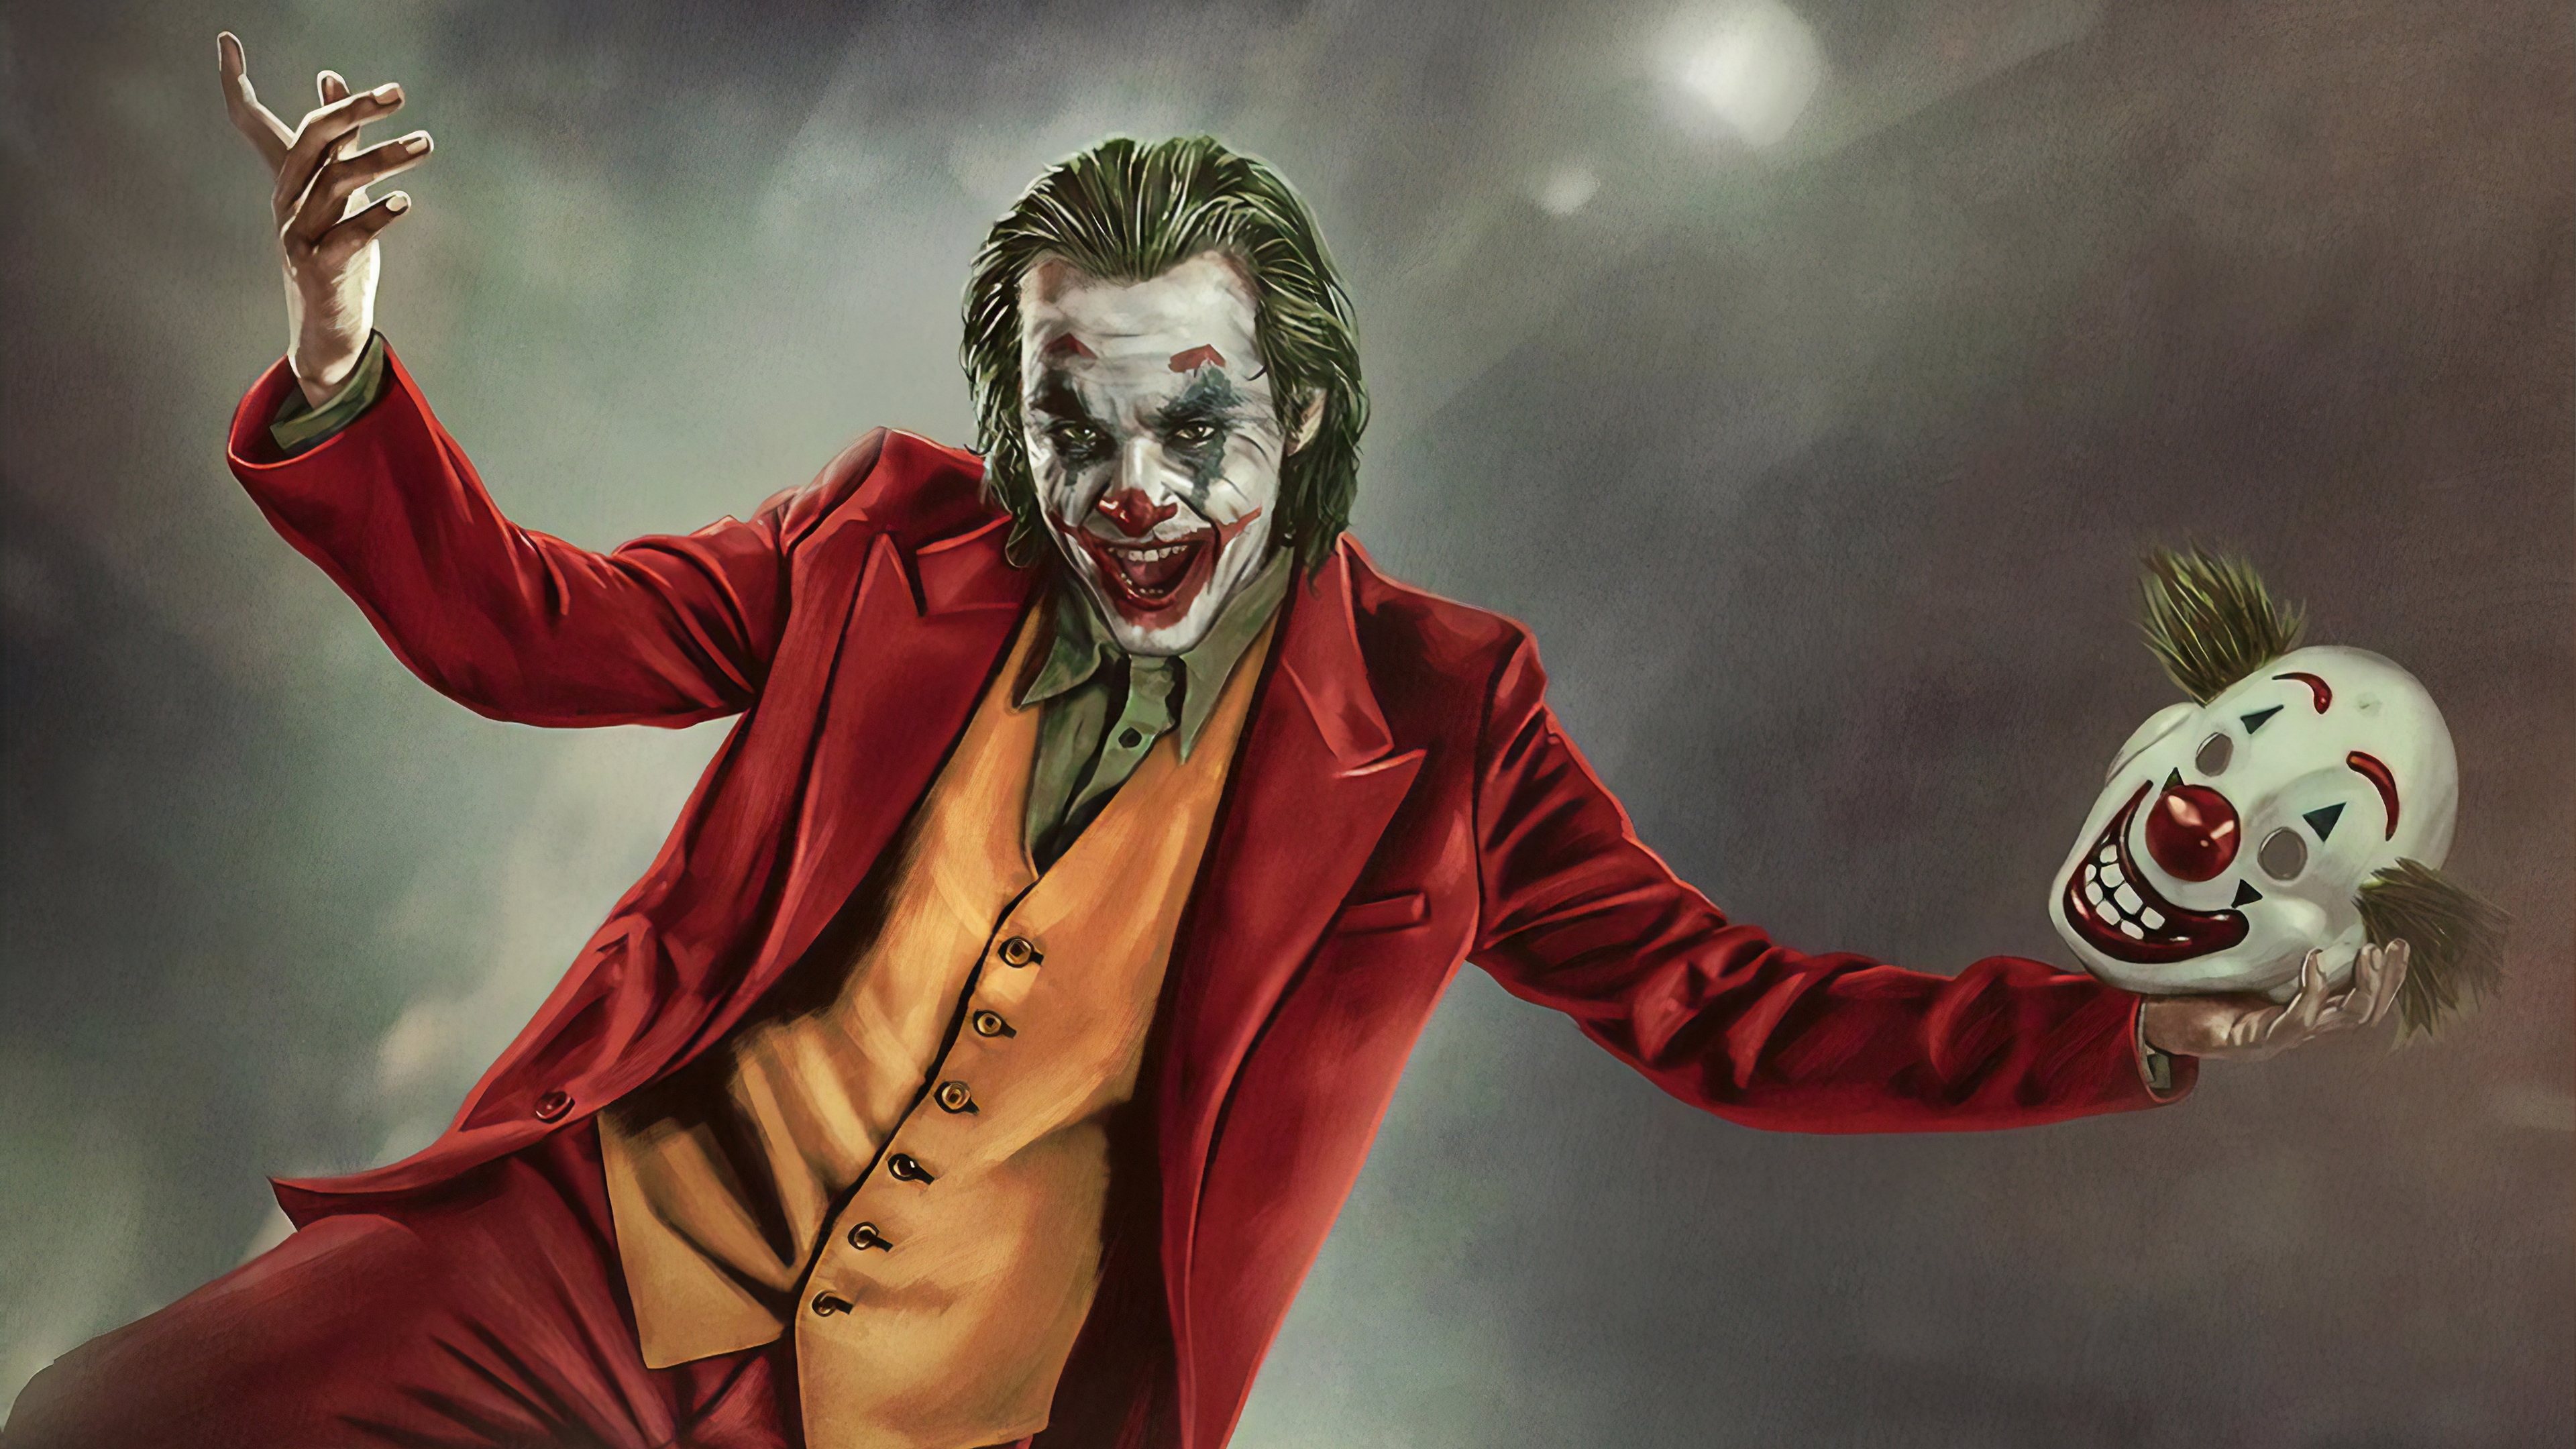 joker smile hahaha 1570394676 - Joker Smile Hahaha - superheroes wallpapers, joker wallpapers, hd-wallpapers, digital art wallpapers, artwork wallpapers, artist wallpapers, 4k-wallpapers